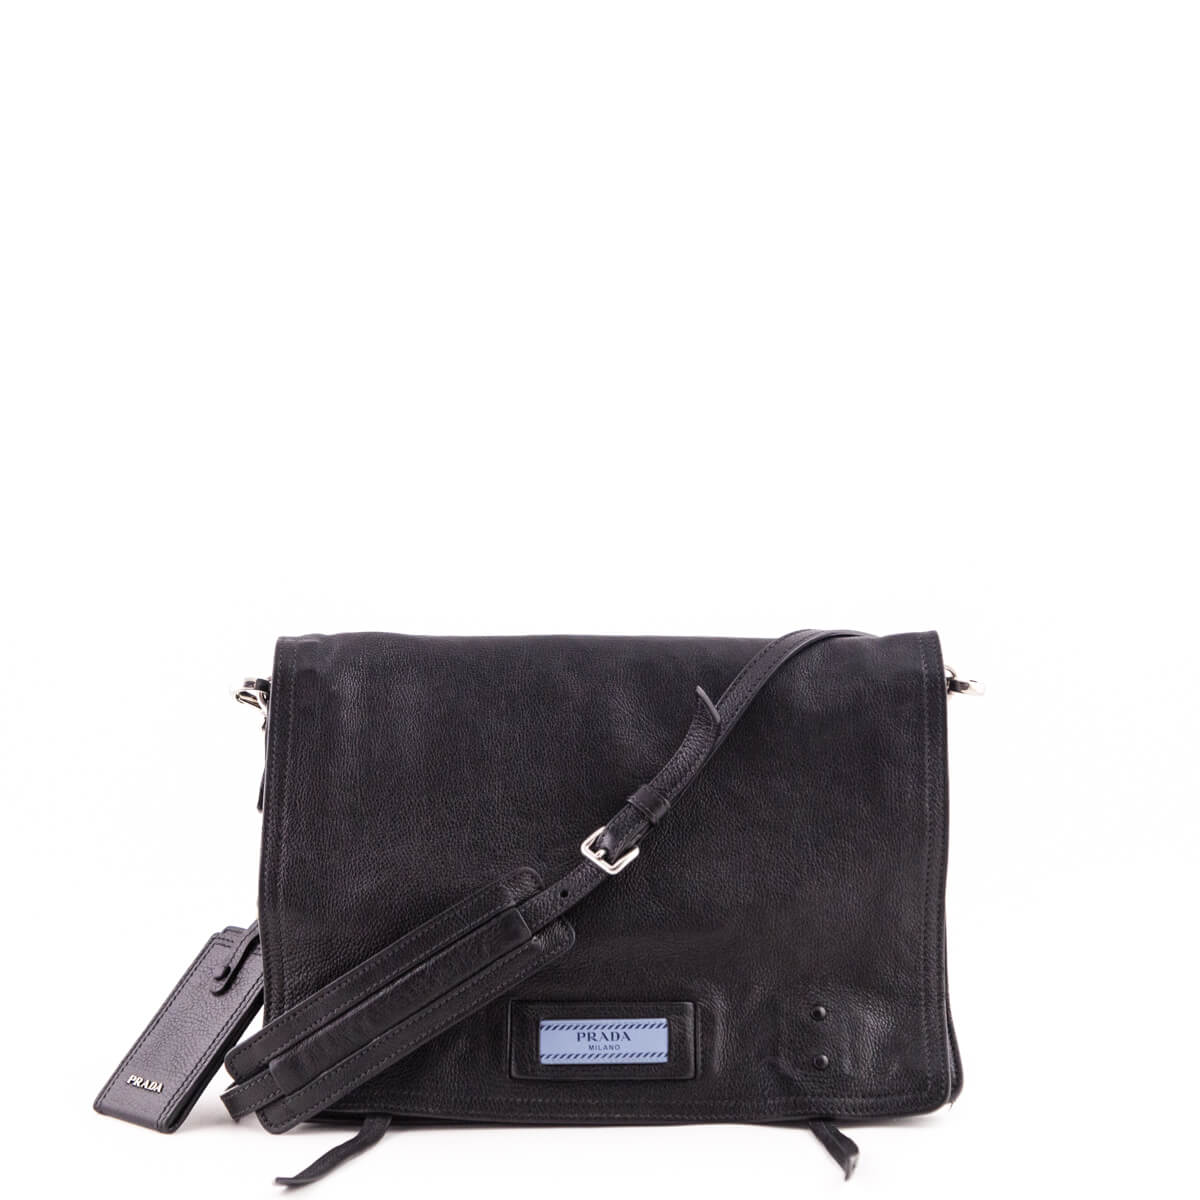 c997e89ccf5c26 Prada Black Glace Calf Small Etiquette Shoulder Bag - LOVE that BAG -  Preowned Authentic Designer ...